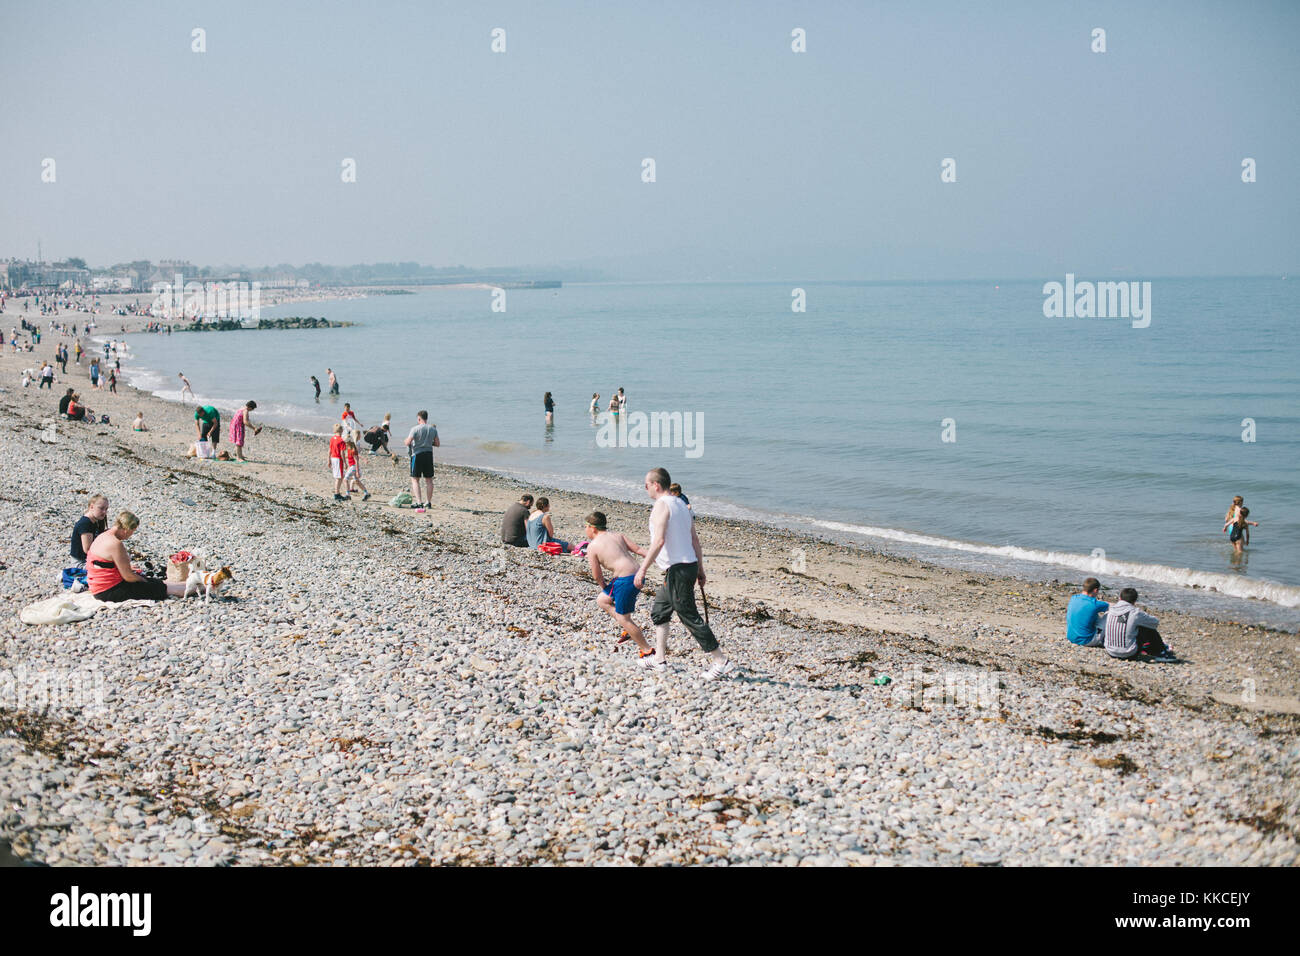 People on the stony beach in Bray enjoying sunny May day realxing , walking and having fun in the water. - Stock Image